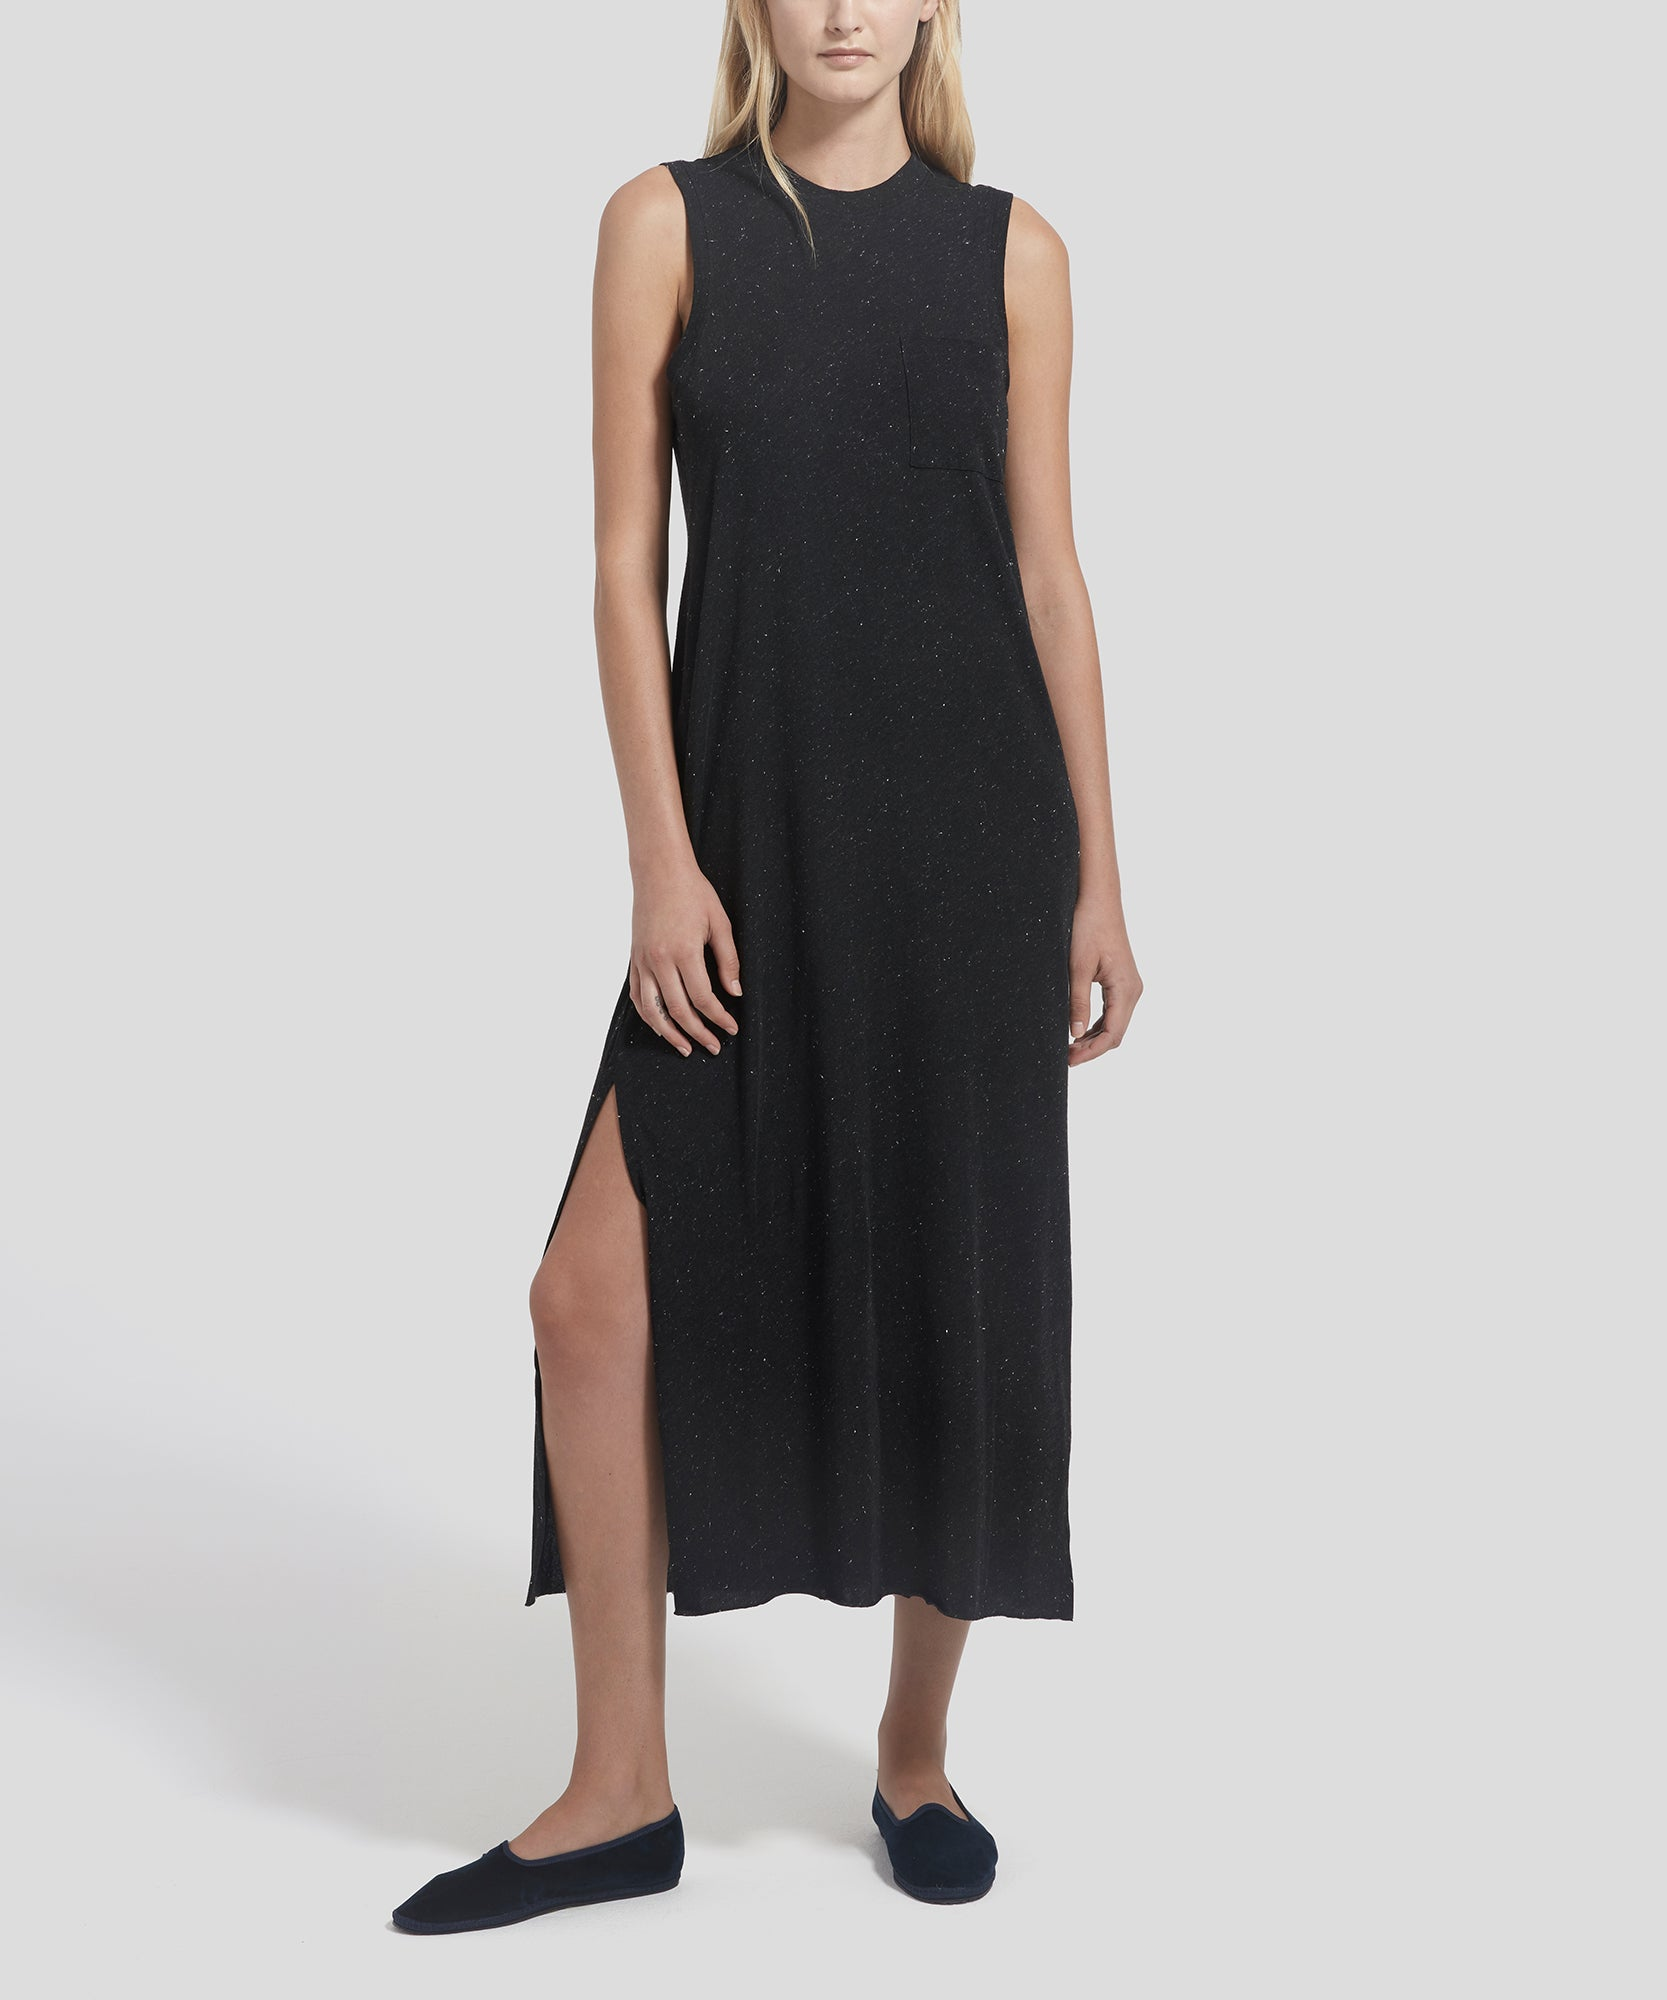 ATM Donegal Sleeveless Maxi Dress